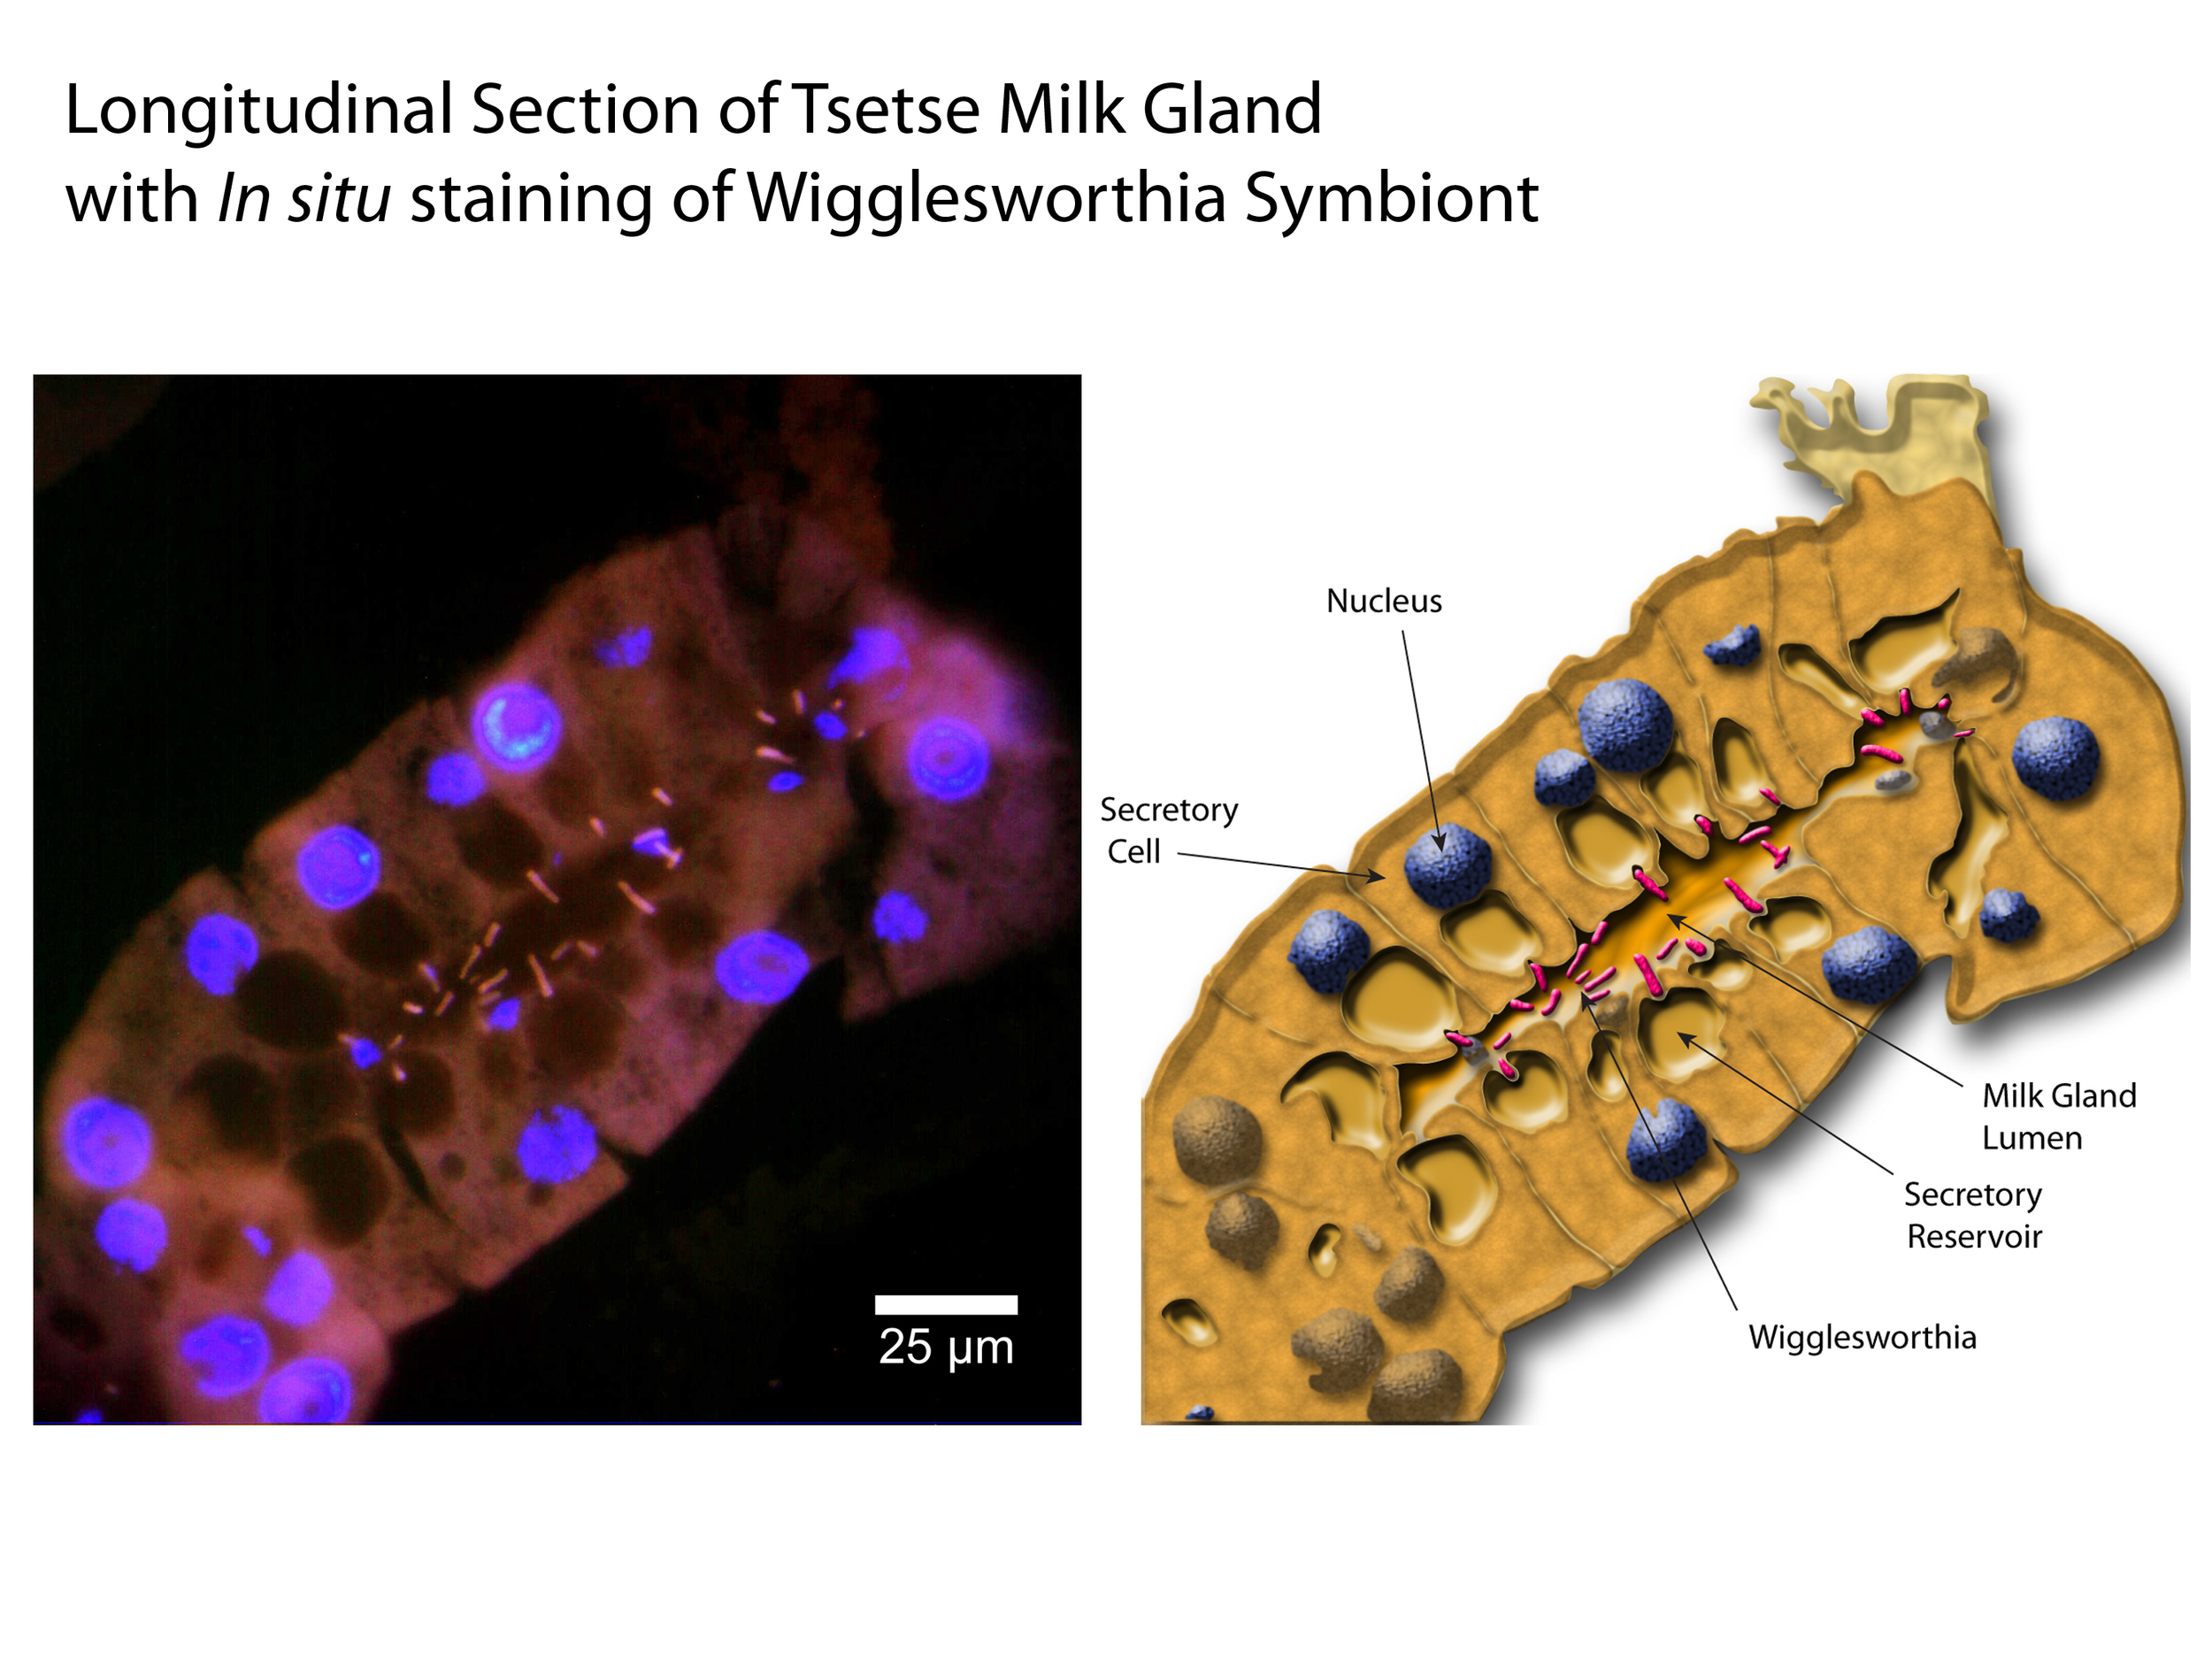 In situ Staining of the Wigglesworthia Symbiont in Tsetse Milk Gland Tubules